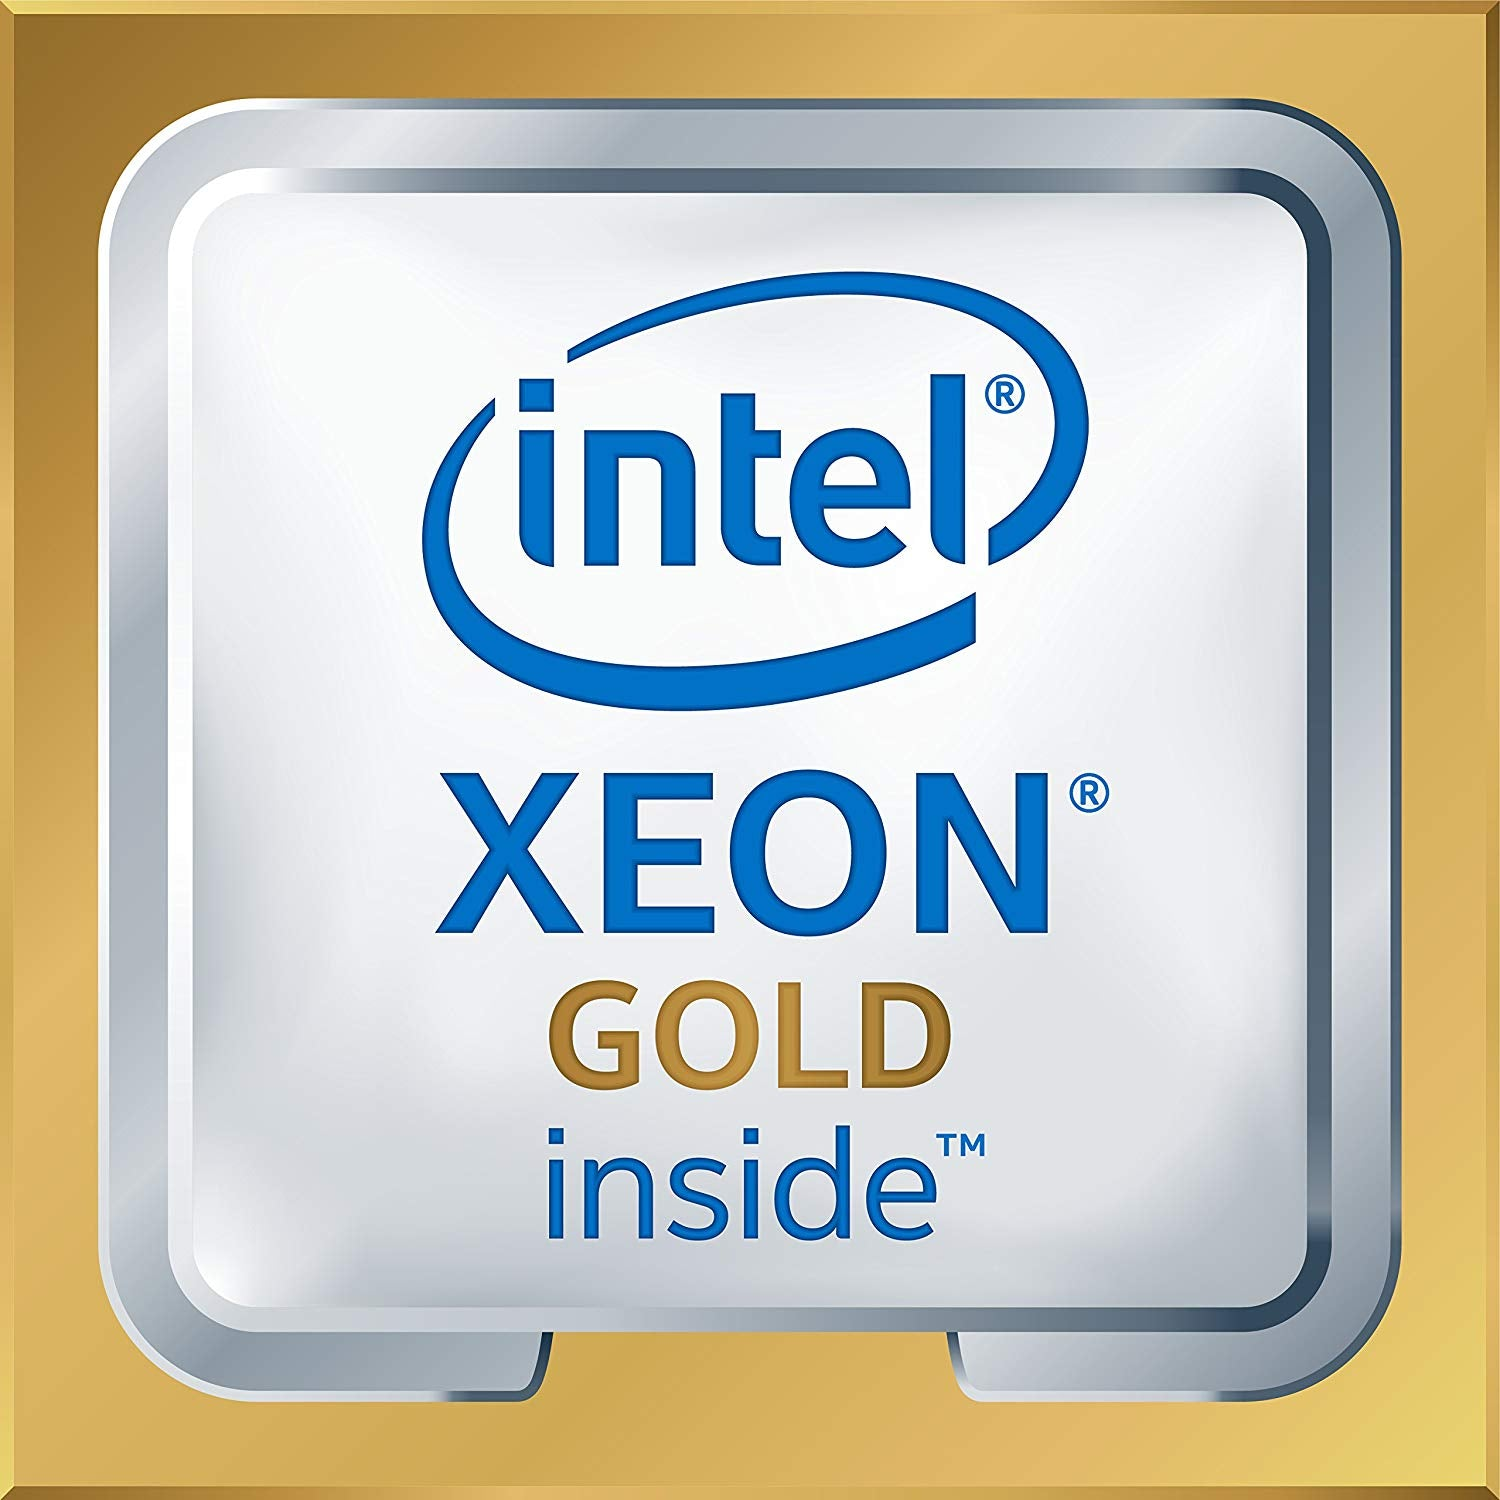 Intel Xeon Gold 6242 16-Core 2.80GHz 22MB Cache Socket FCLGA3647 (SRF8Y) Server Processor